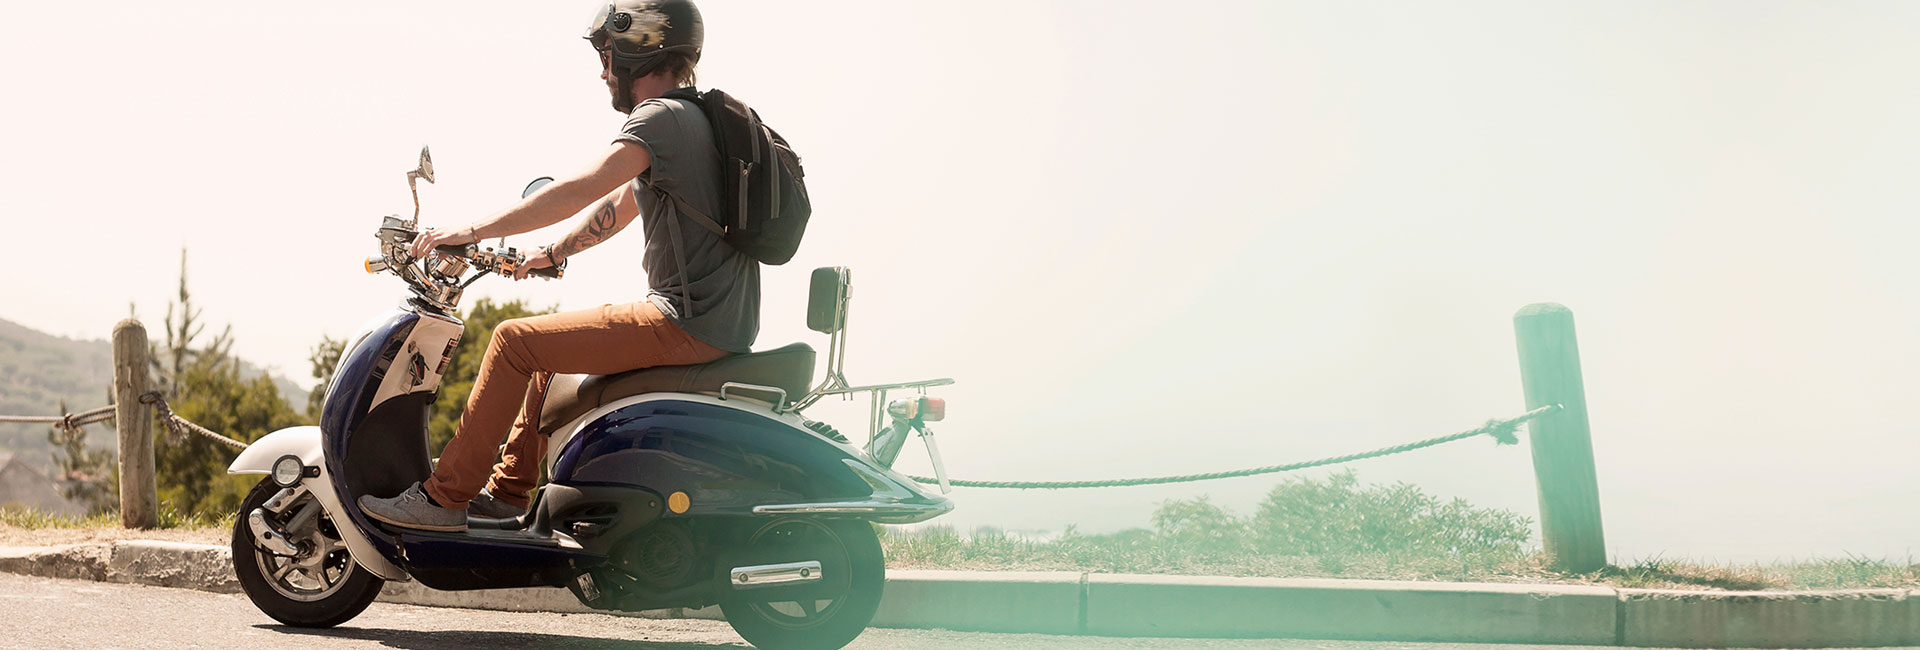 VARTA® Scooter batteries are the smart choice for today's riders.